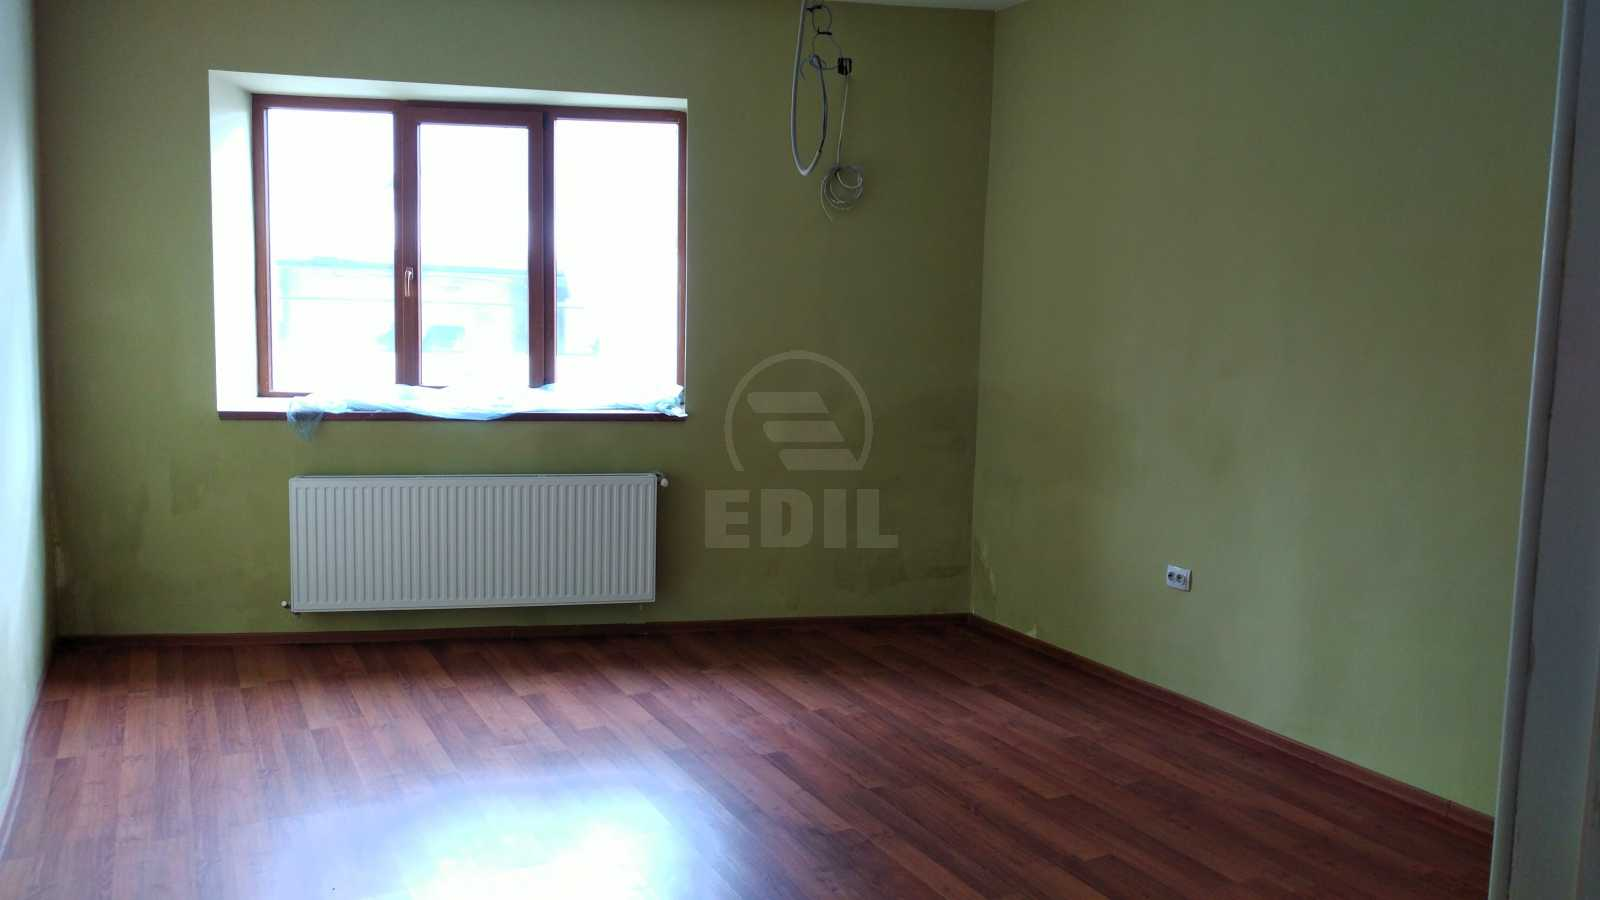 House for rent 3 rooms, CACJ284919-2